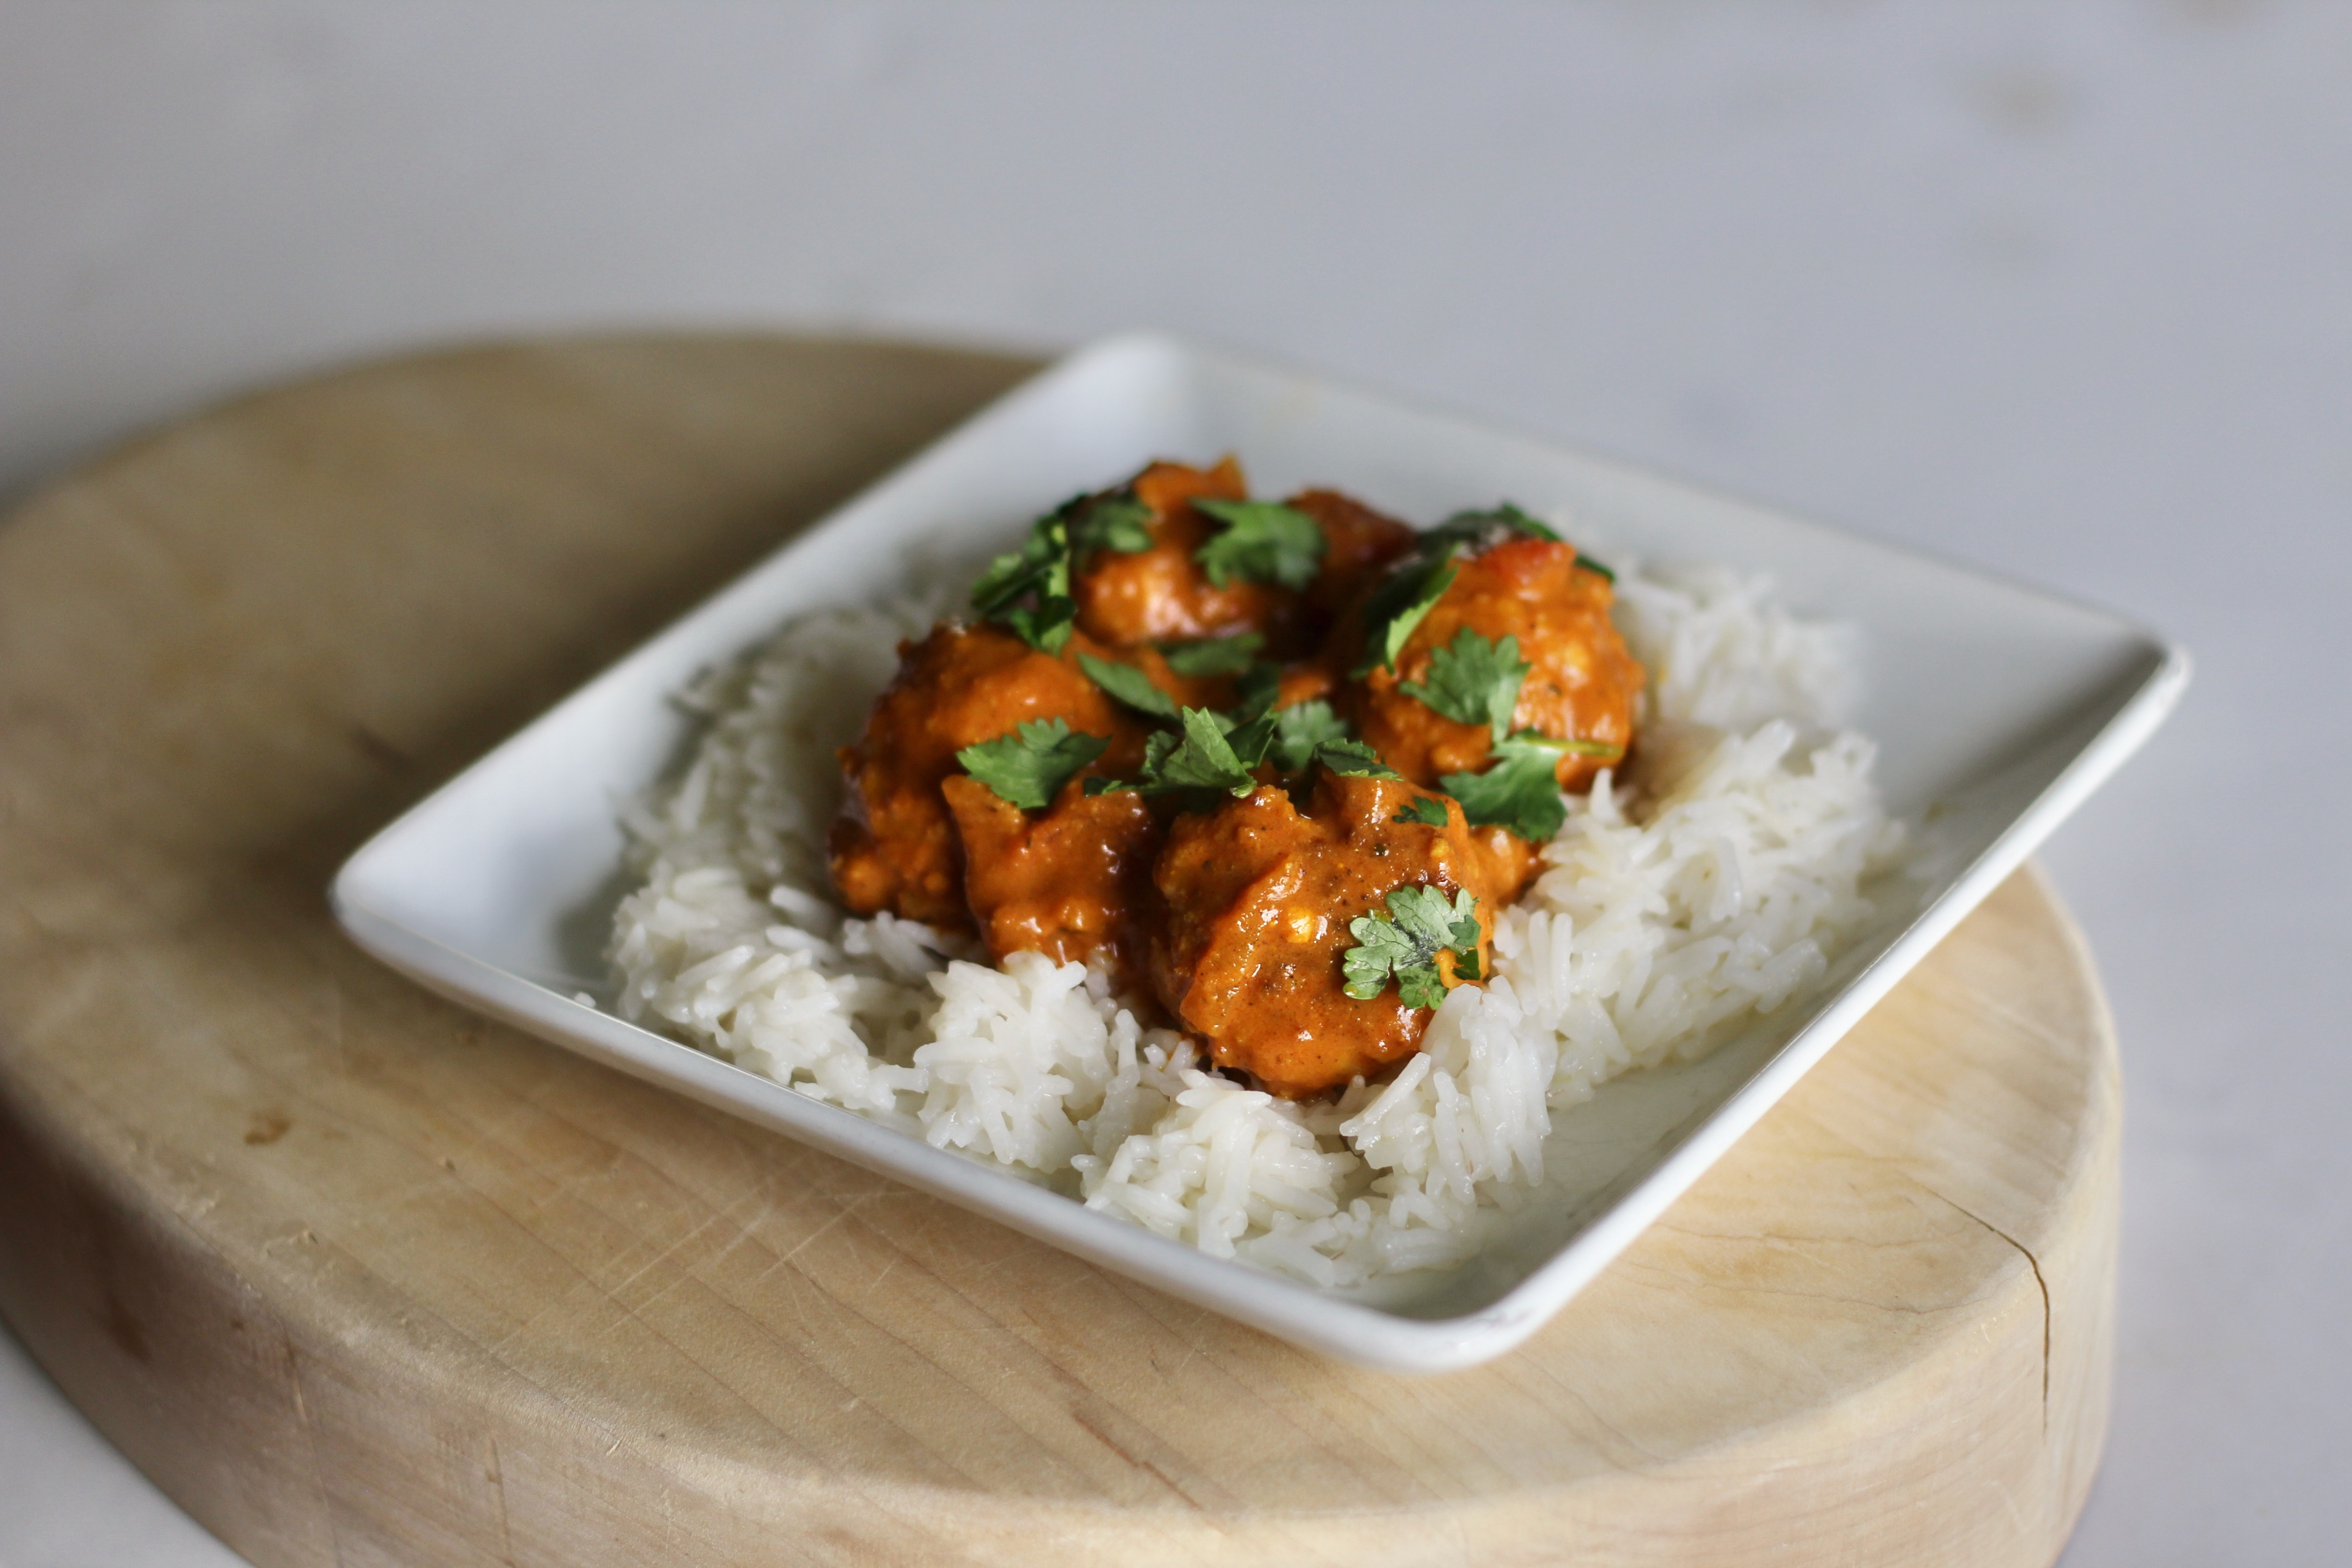 """Here's a tasty take on chicken tikka masala. """"Don't let the number of spices scare you off, the flavor of this dish is complex and satisfying,"""" says SunnyDaysNora. """"Serve over warm rice or with naan!"""""""